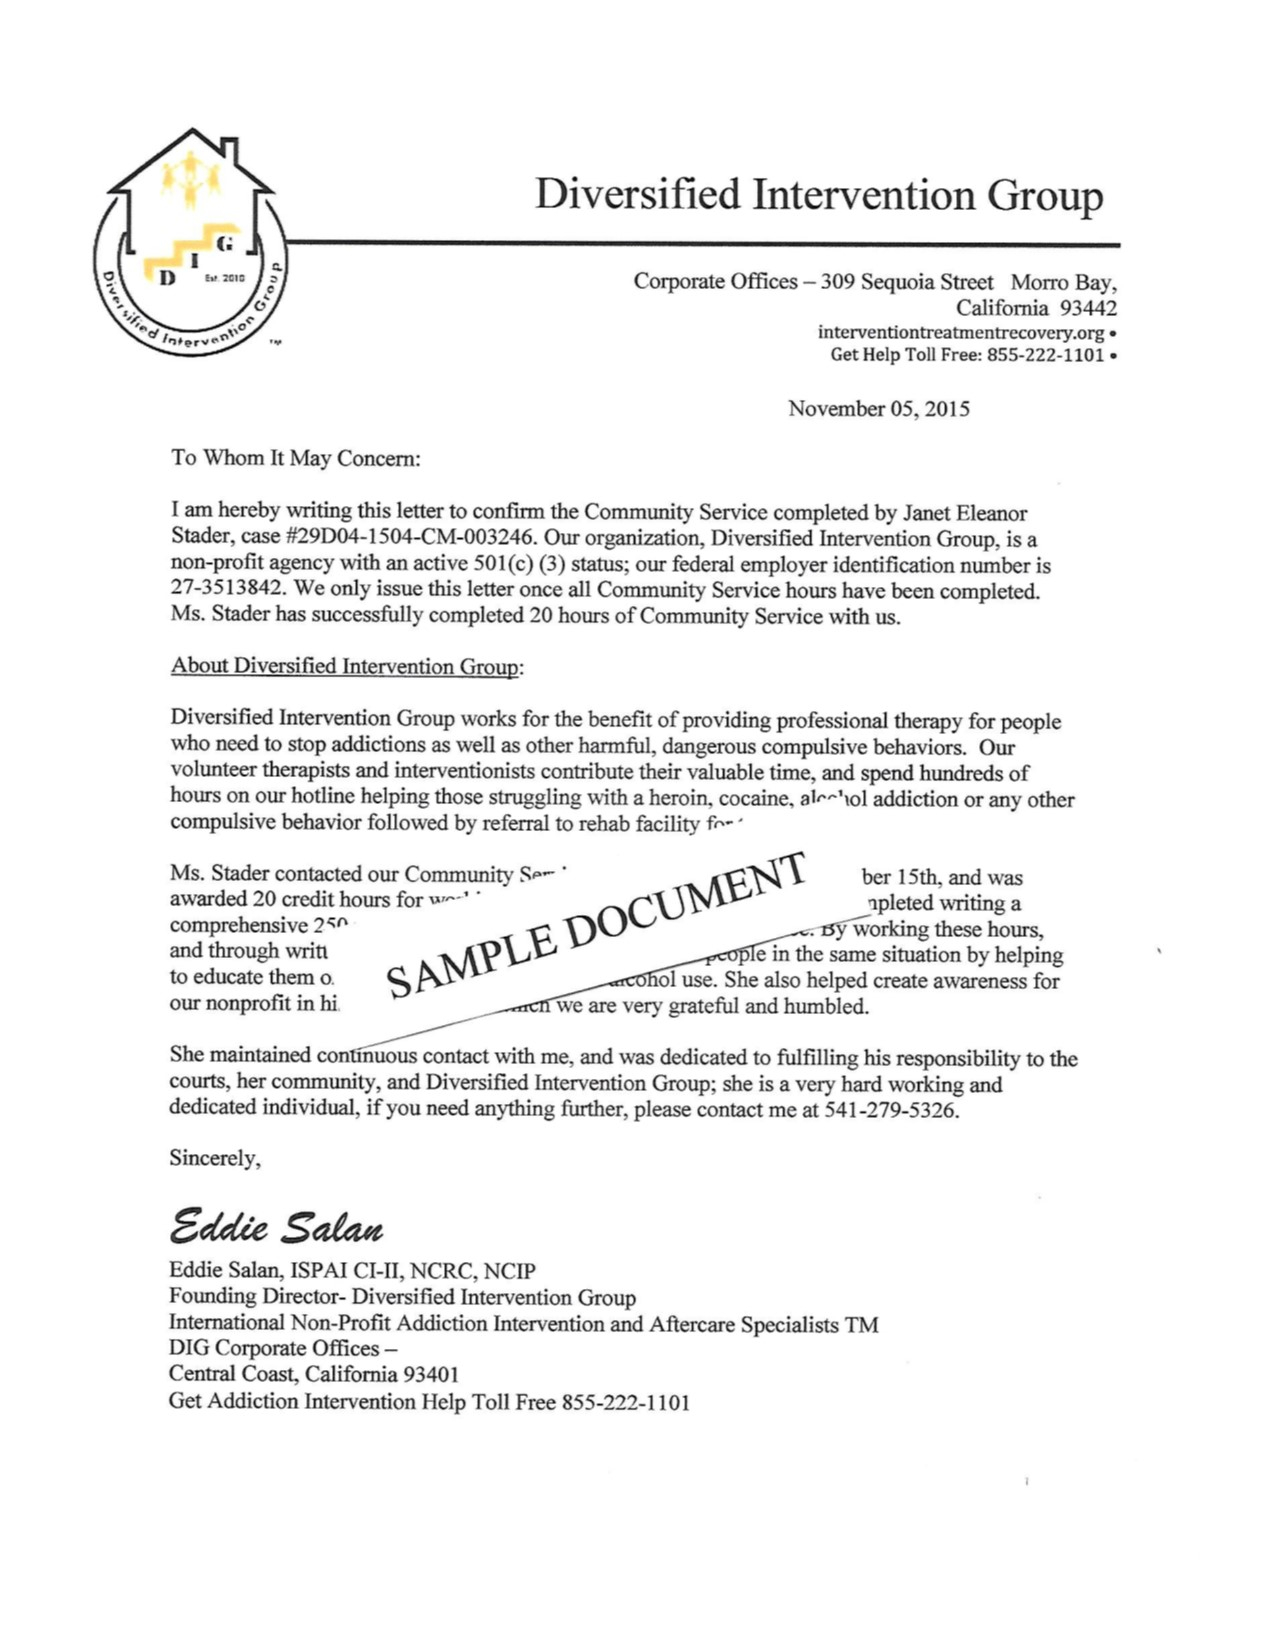 Court ordered Community Service Letter Template - How to Write An Intervention Letter Gallery Letter format formal